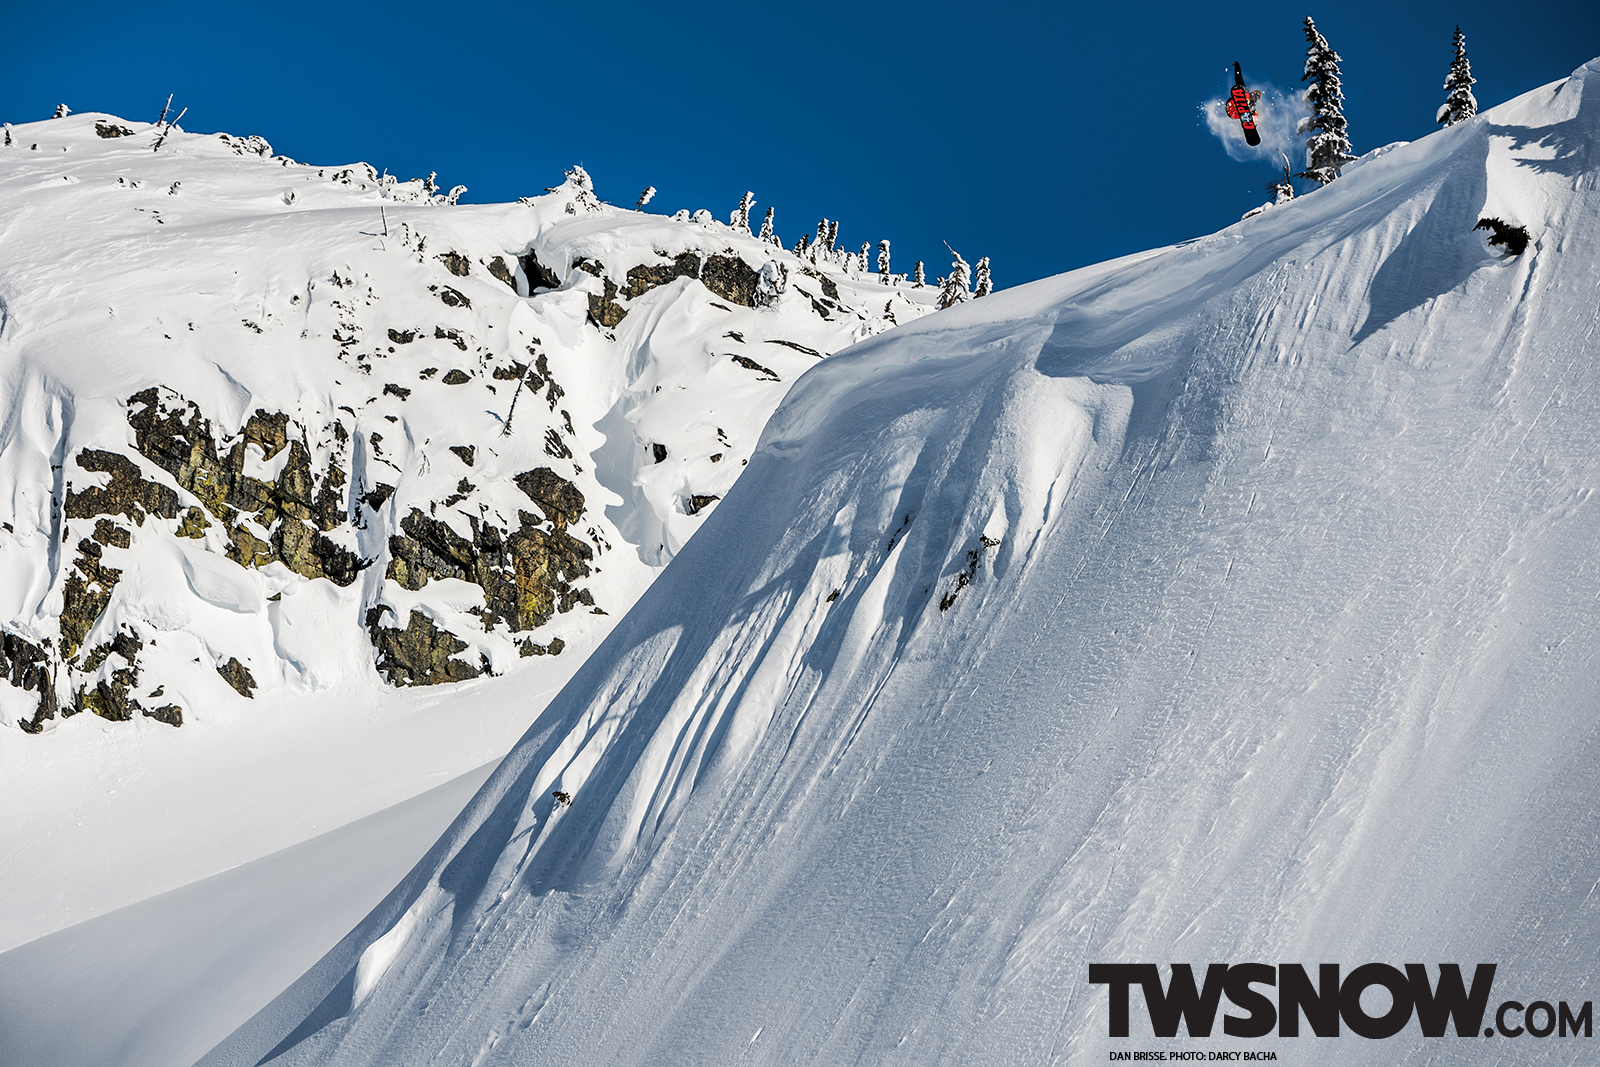 Wallpaper Wednesday Dan Brisse TransWorld SNOWboarding 1600x1067